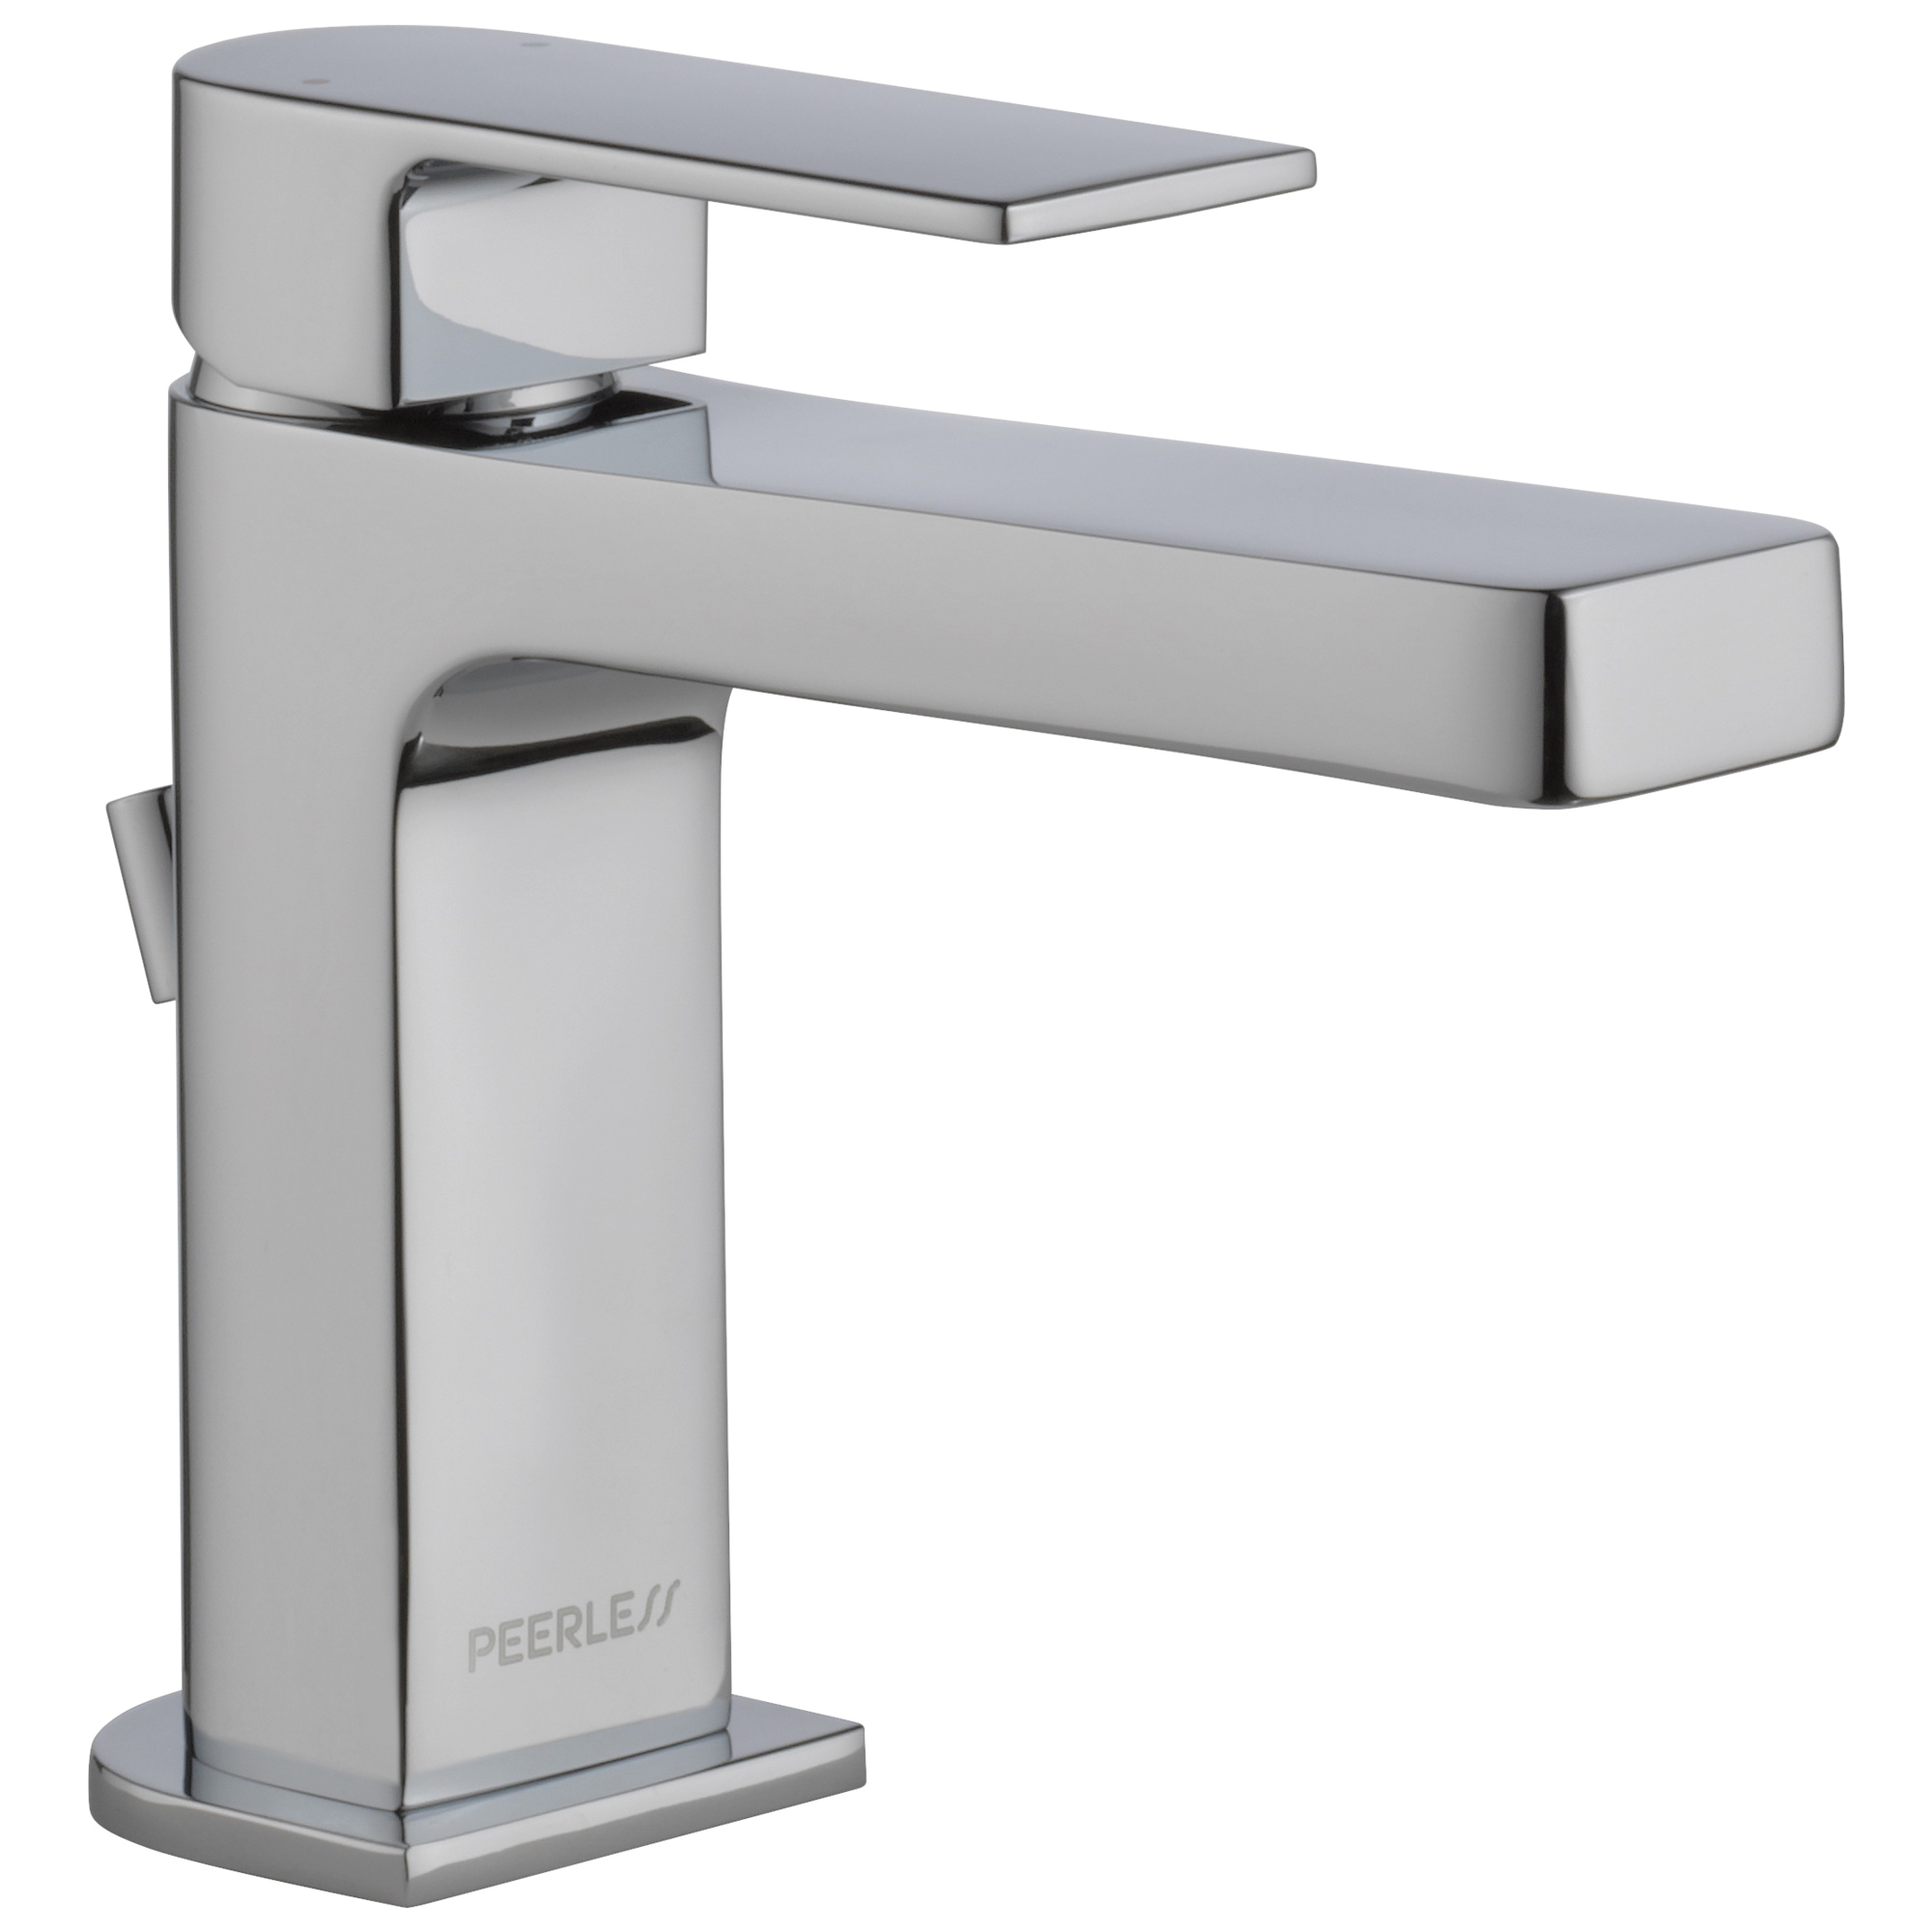 Peerless® P1519LF Bathroom Faucet, Xander™, Chrome Plated, 1 Handles, 50/50 Pop-Up Drain, 1 gpm